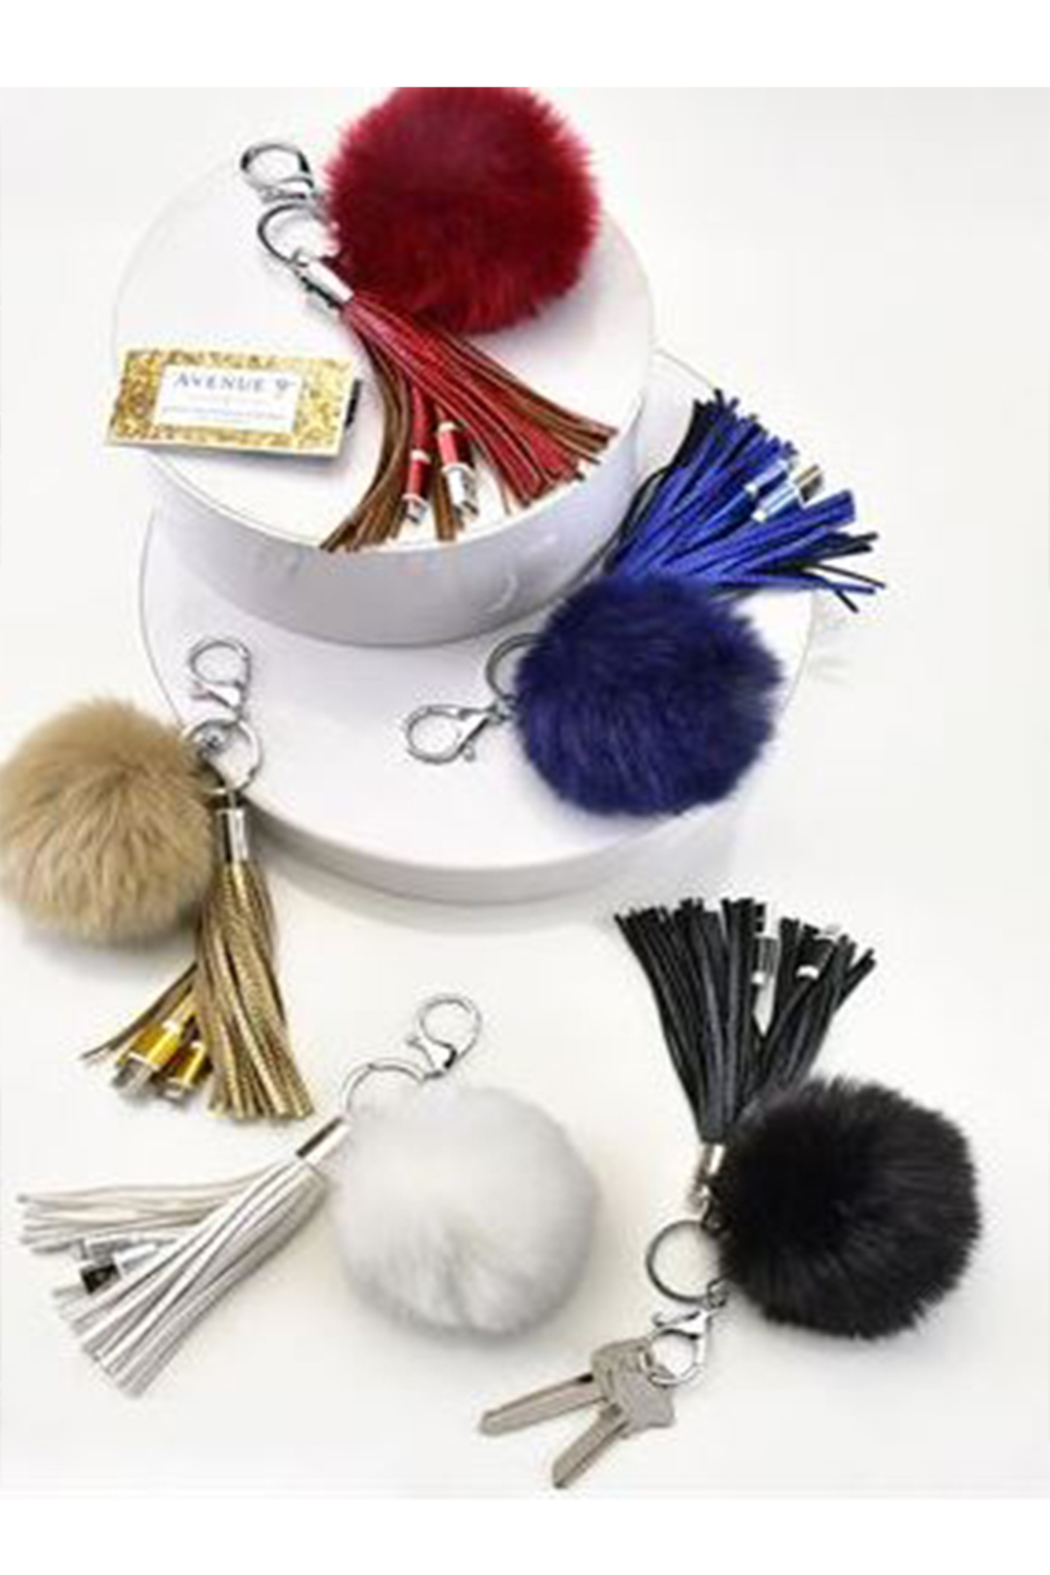 Gift Craft FAUX-FUR POM-POM & TASSEL PURSE ACCESSORY W/ USB CHARGER - Front Cropped Image